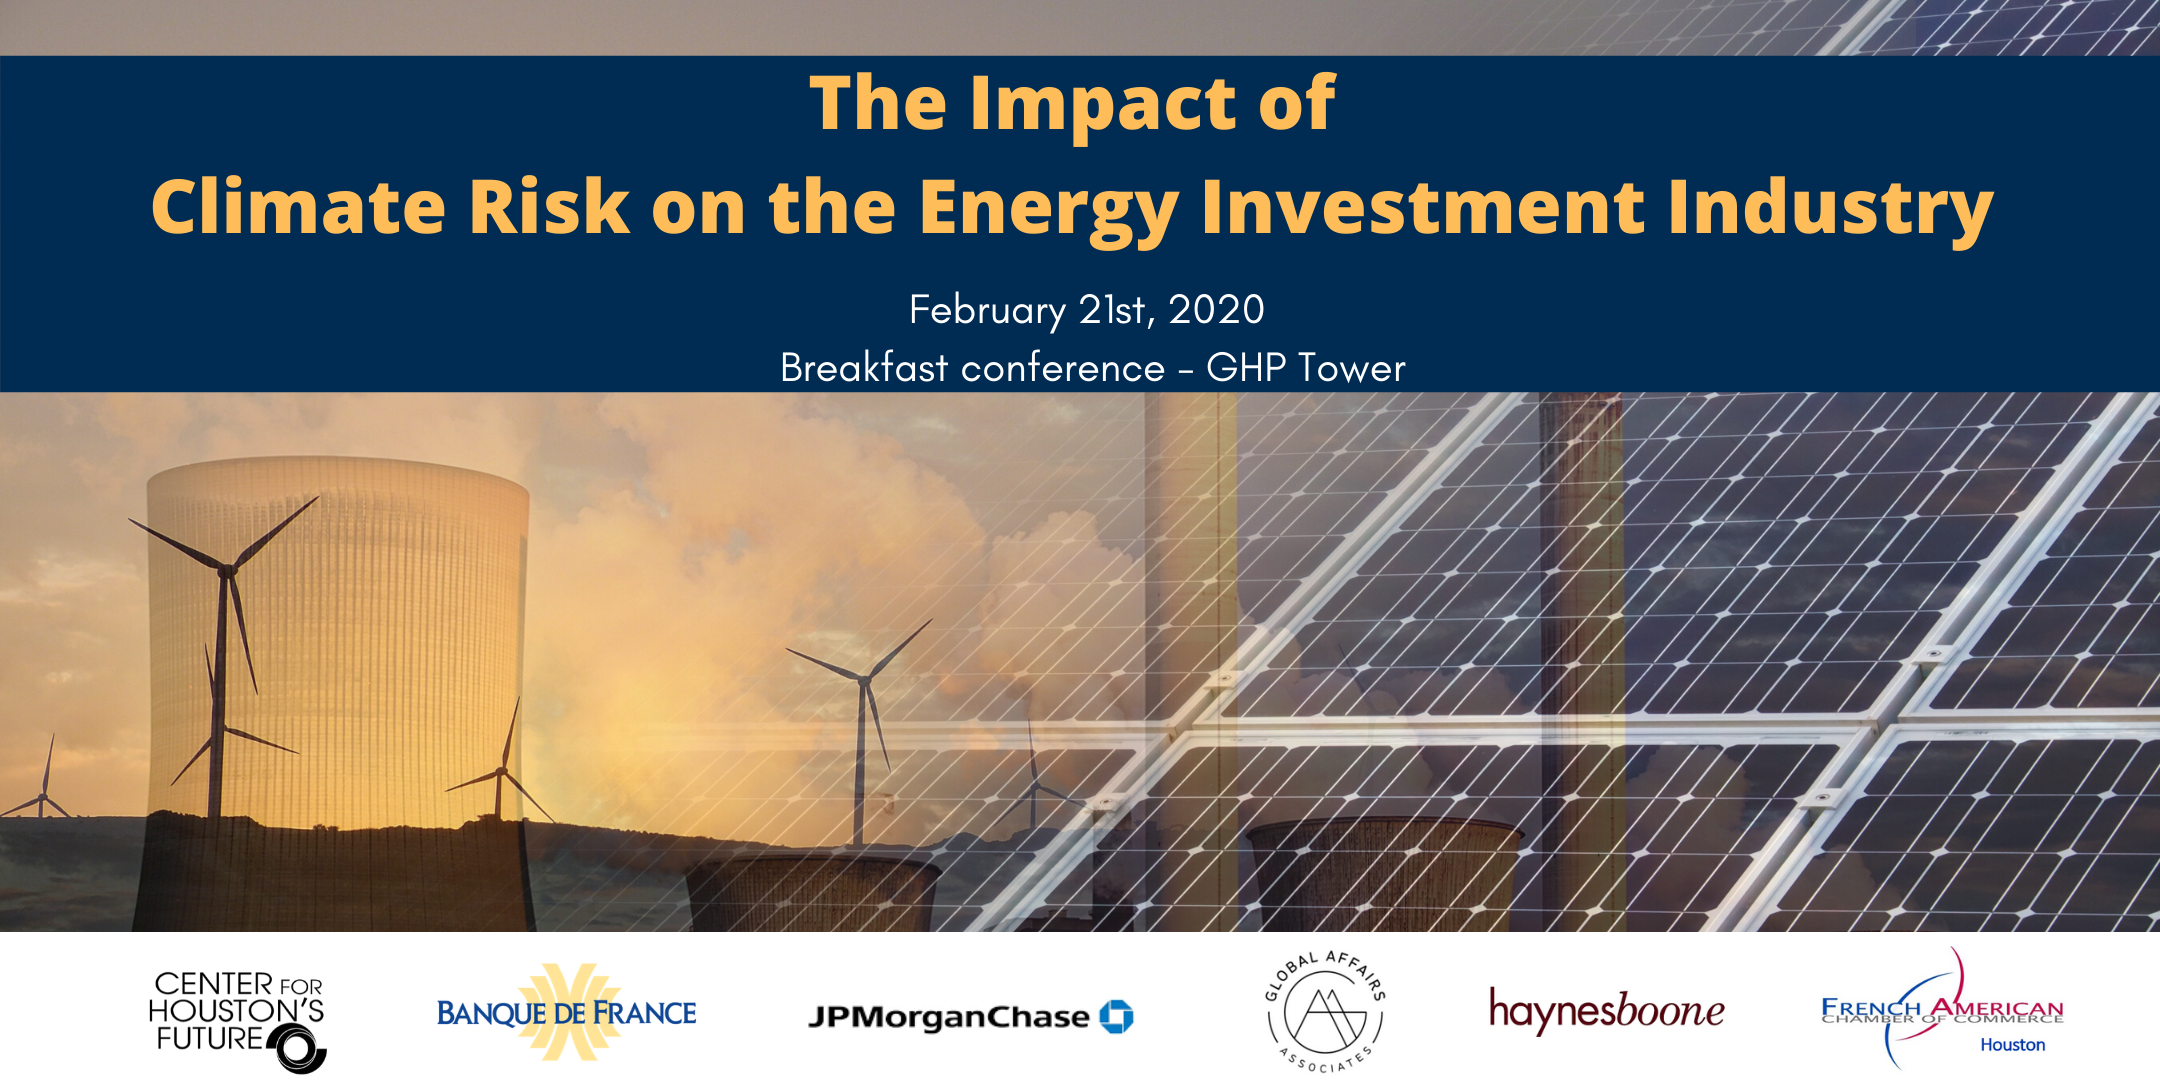 The Impact of Climate Risk on the Energy Investment Industry